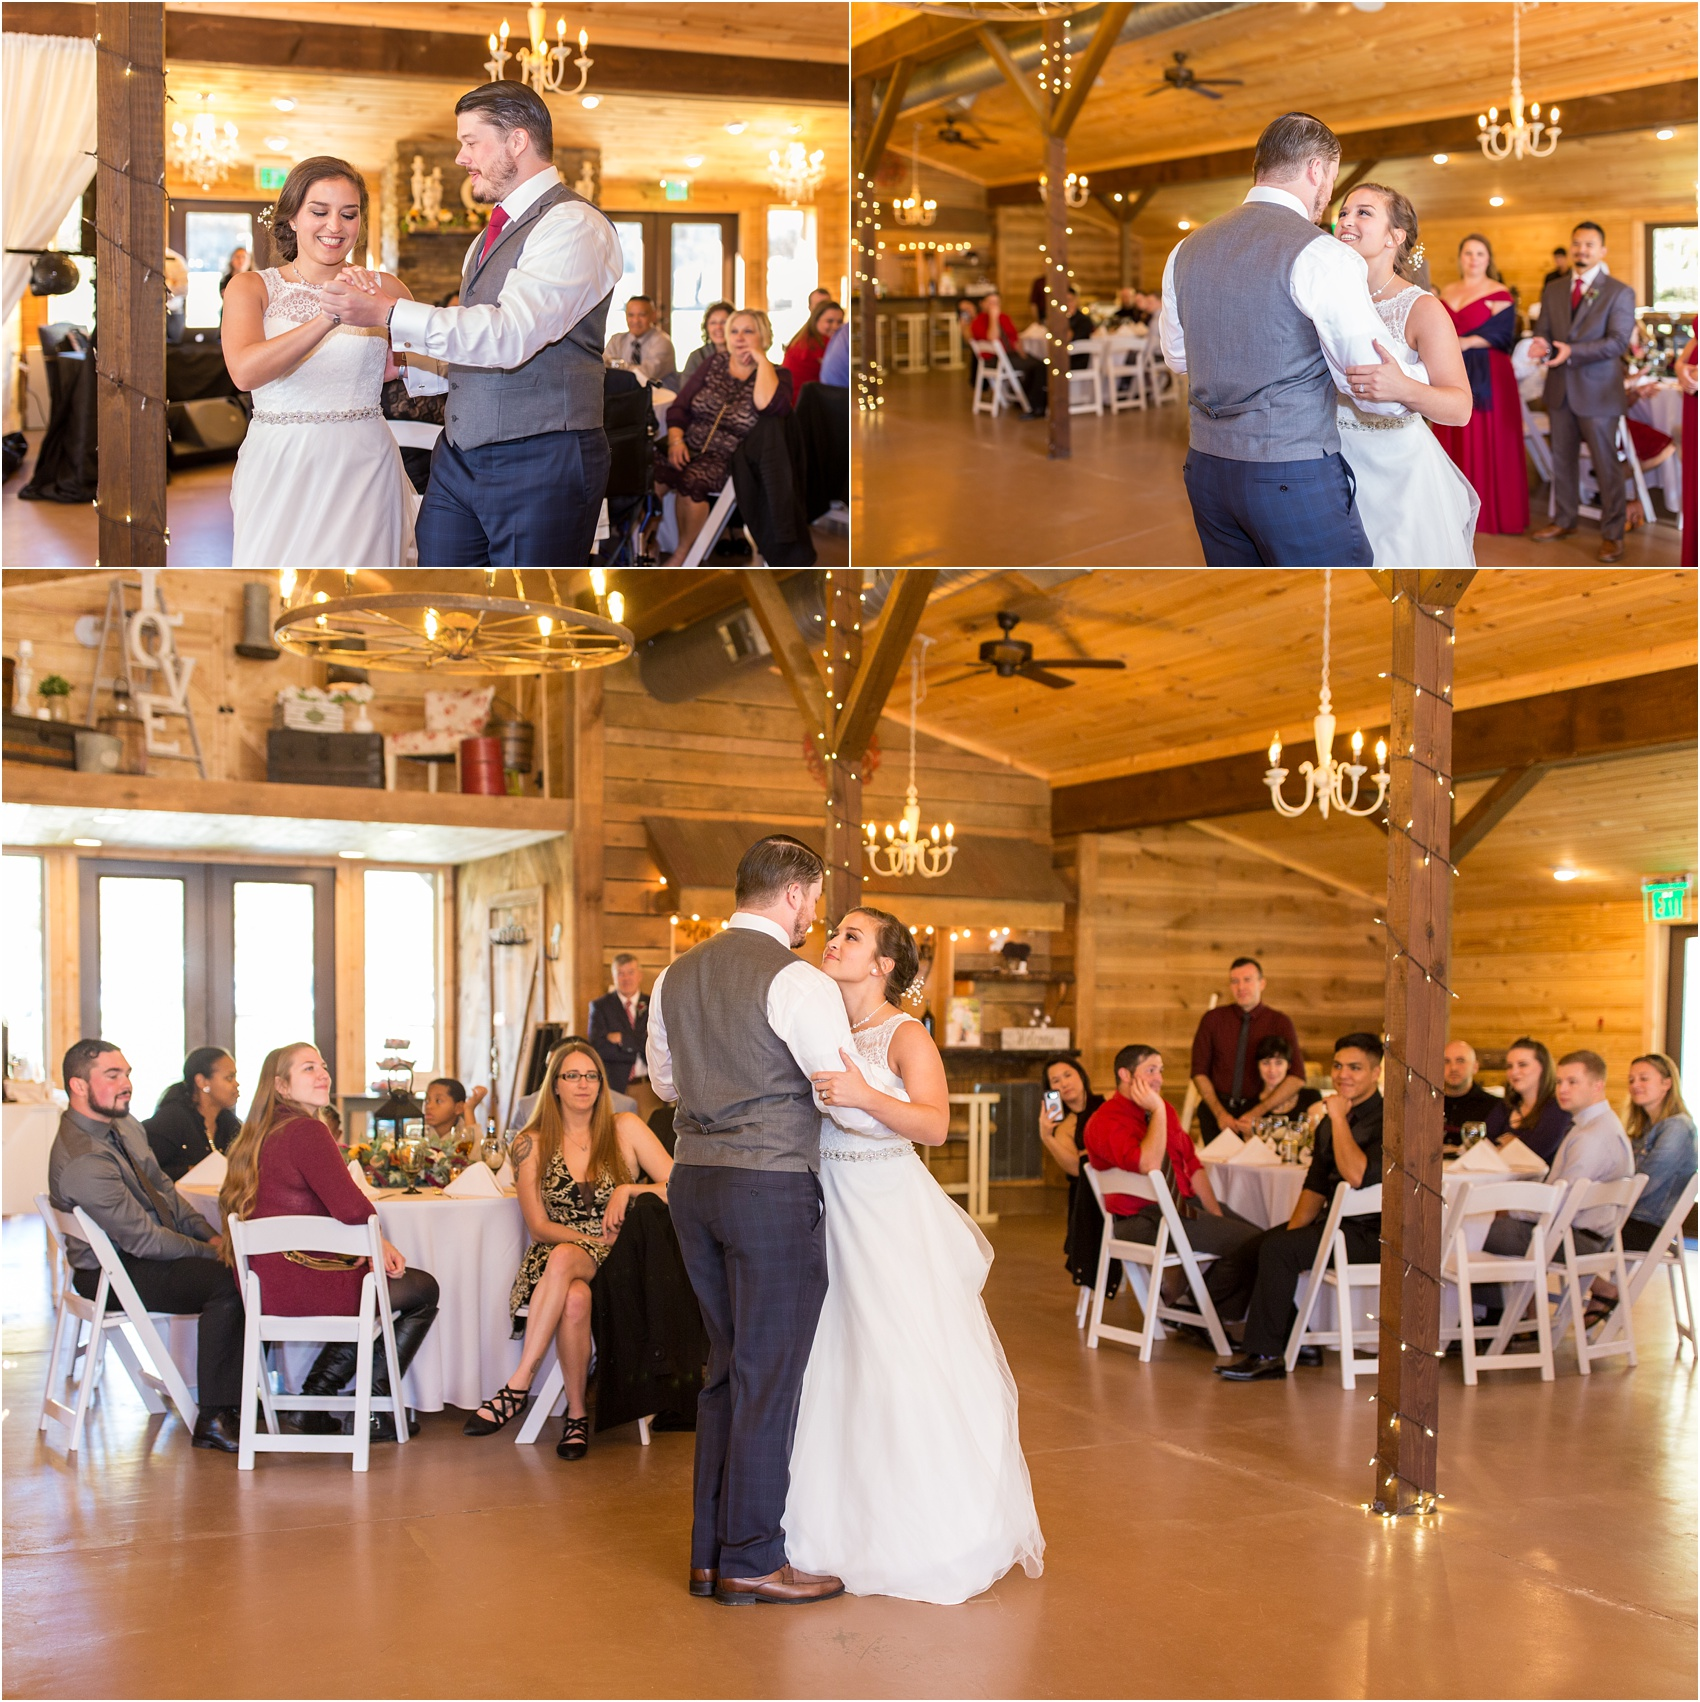 Savannah Eve Photography- McGeary-Epp Wedding- Sneak Peek-84.jpg